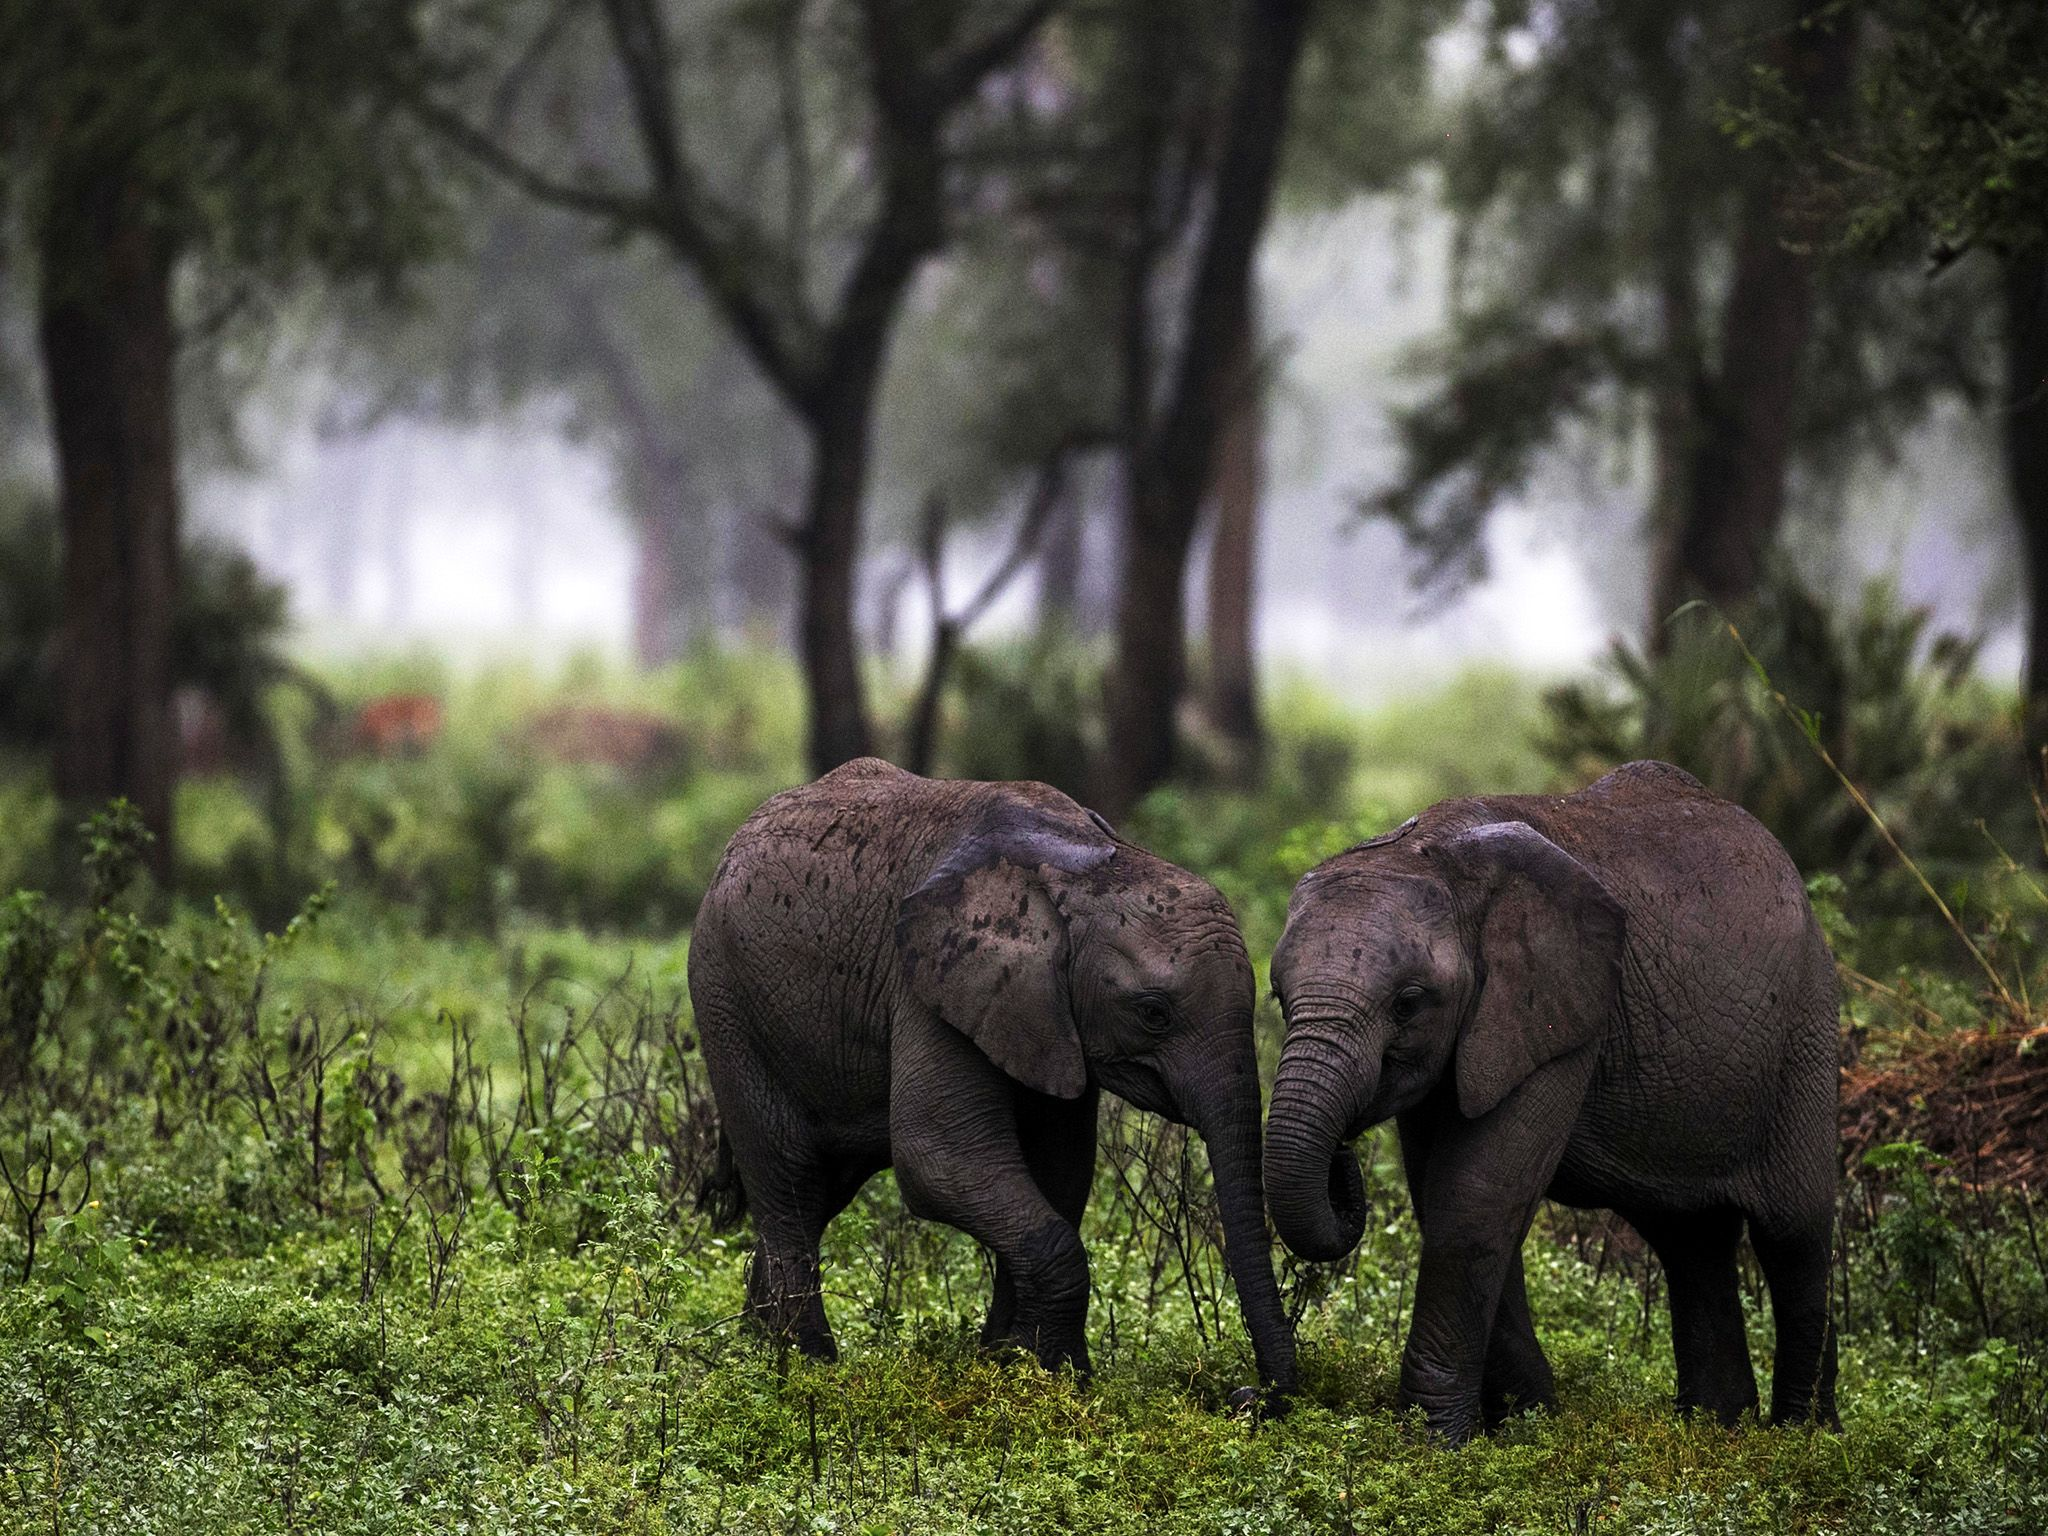 Mozambique: Two calves play in the morning mist. Gorongosa National Park, Mozambique. This image... [Photo of the day - 十月 2015]